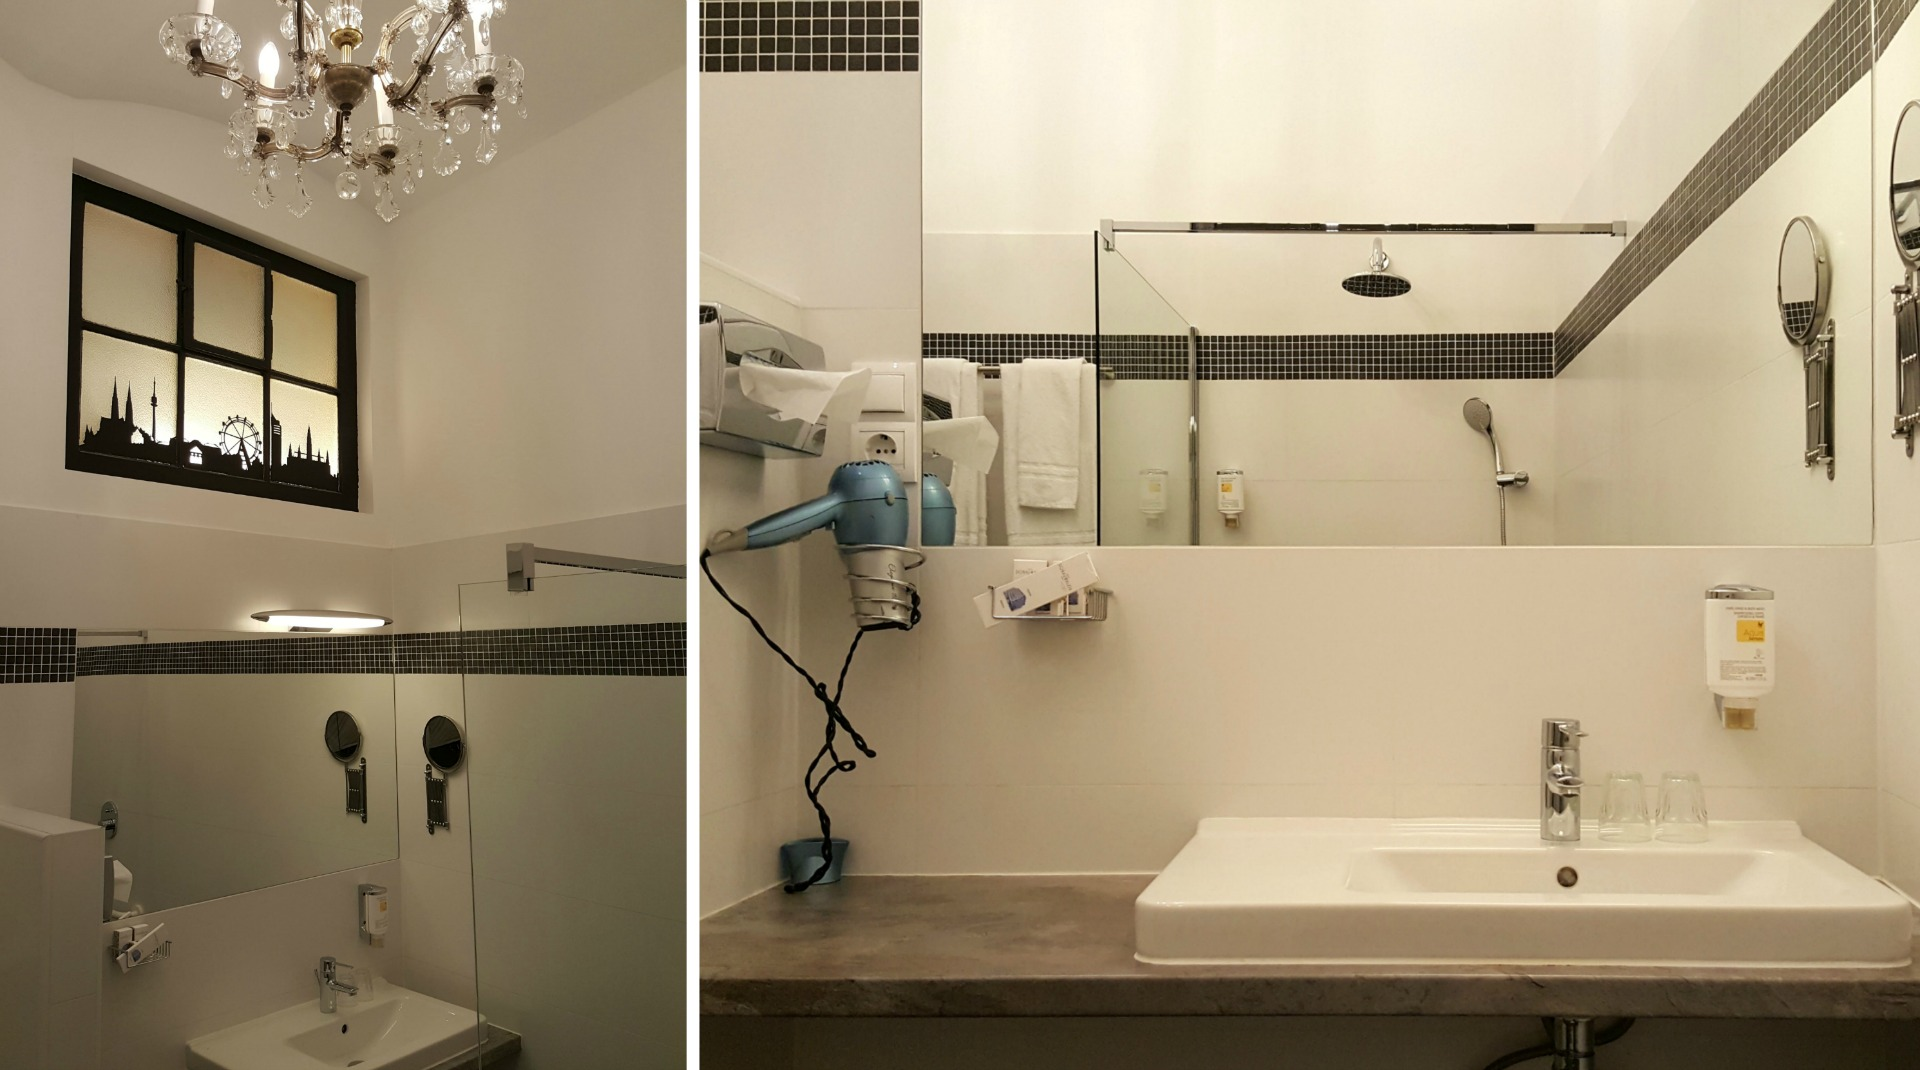 Boutique_Hotel_Donauwalzer_wheelchair_accessible_bathroom_sink_window_scene